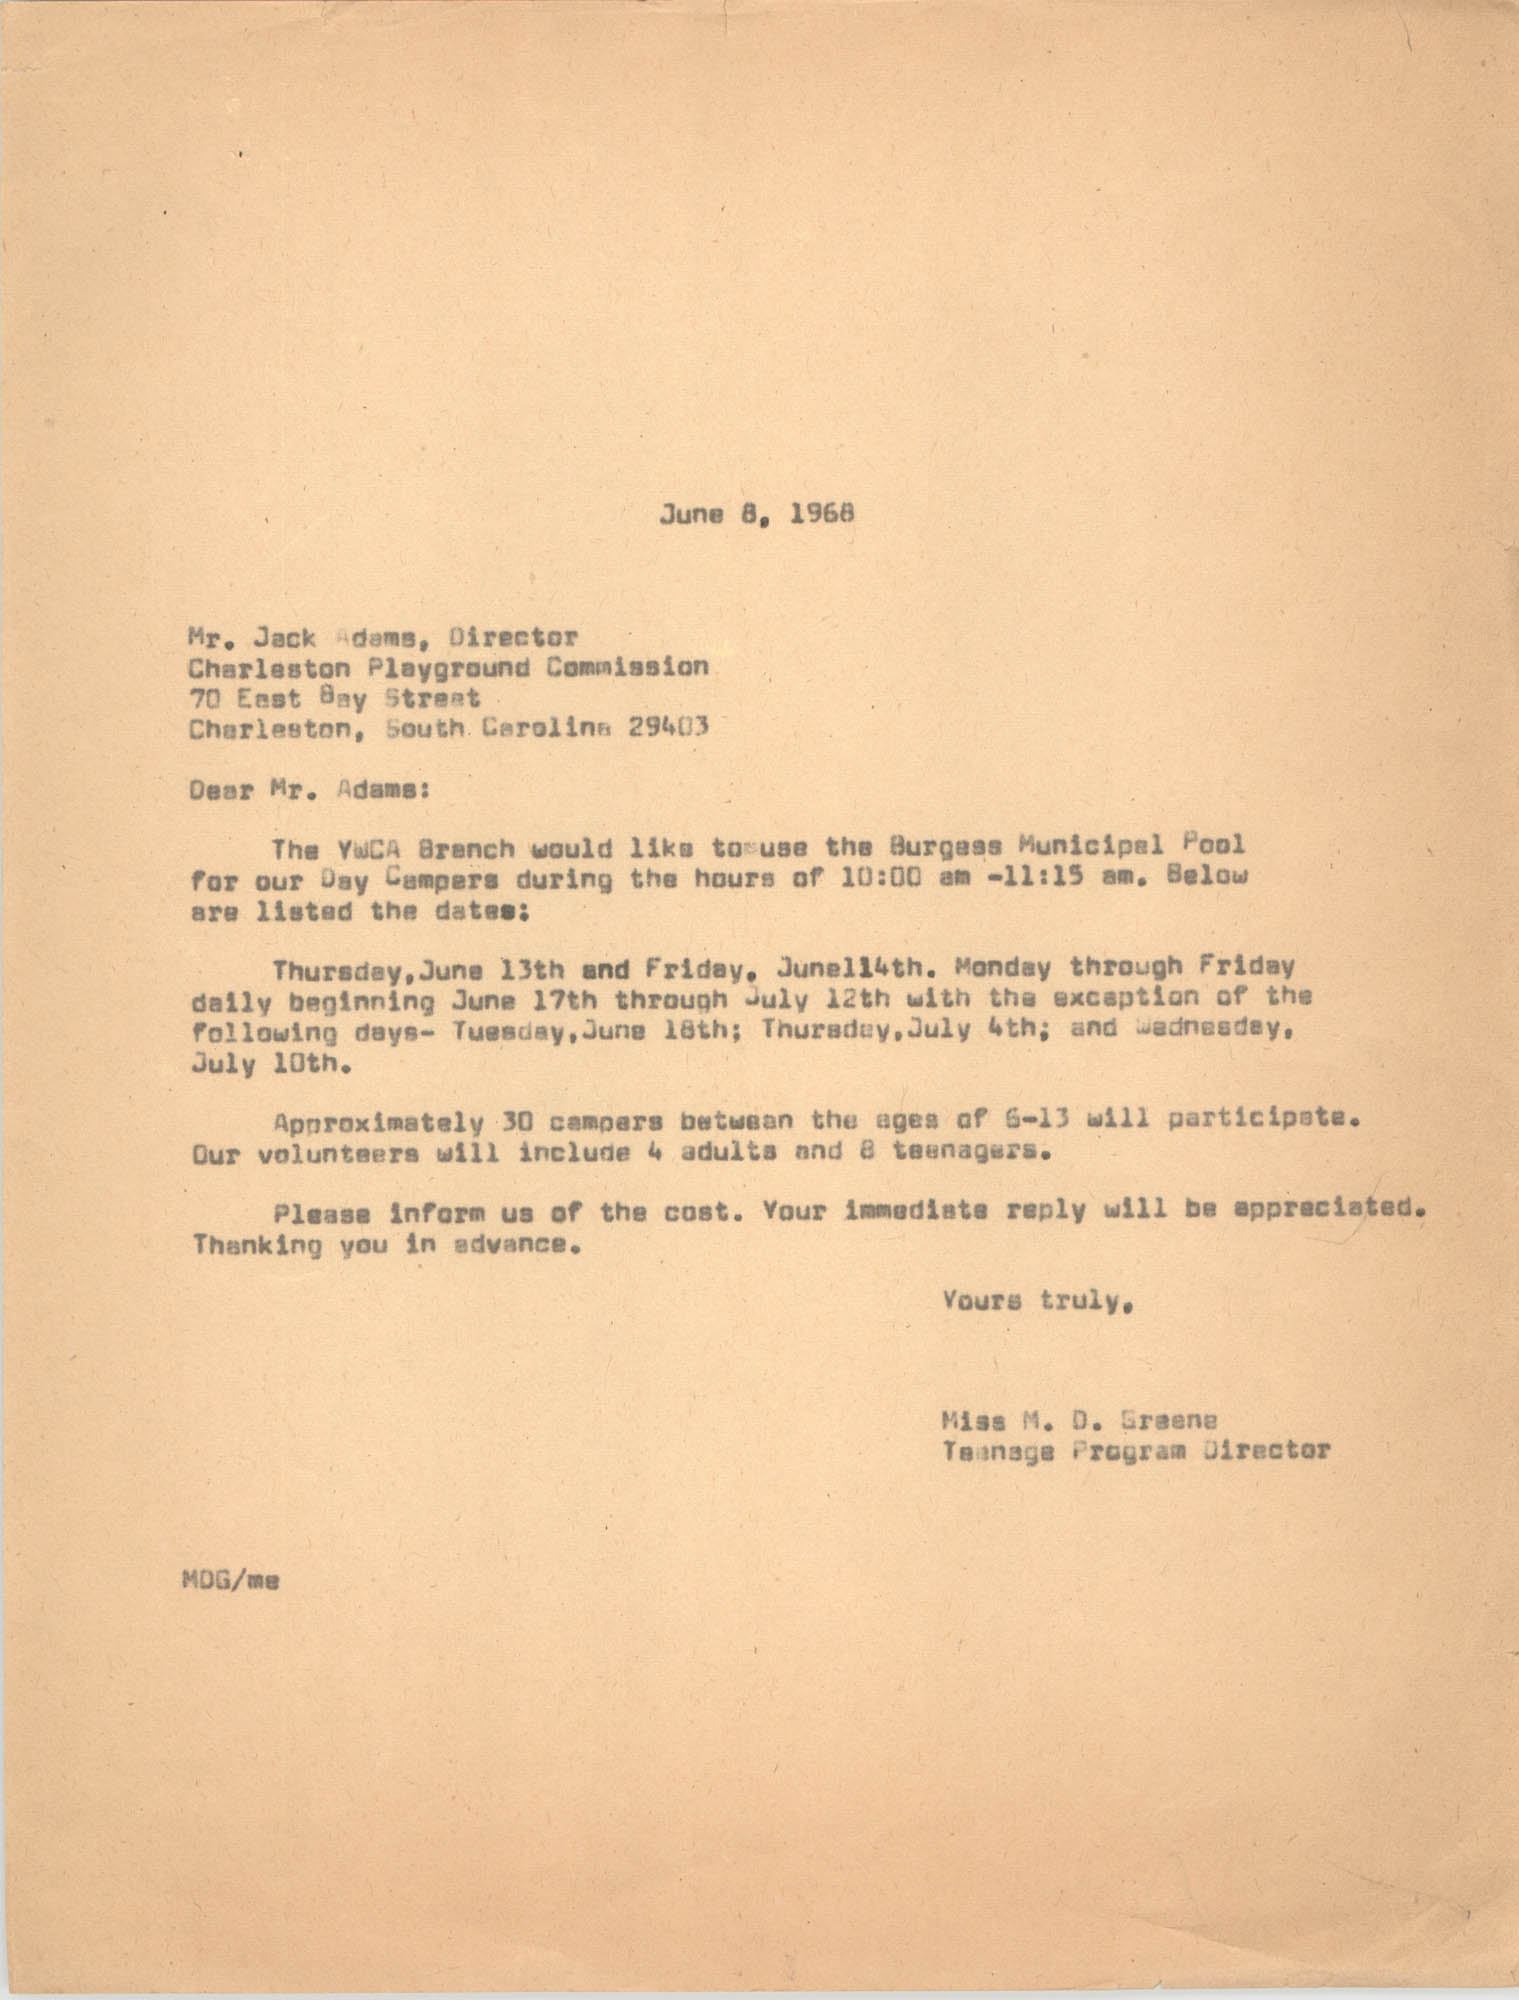 Letter from Marguerite D. Greene to Jack Adams, June 8, 1968